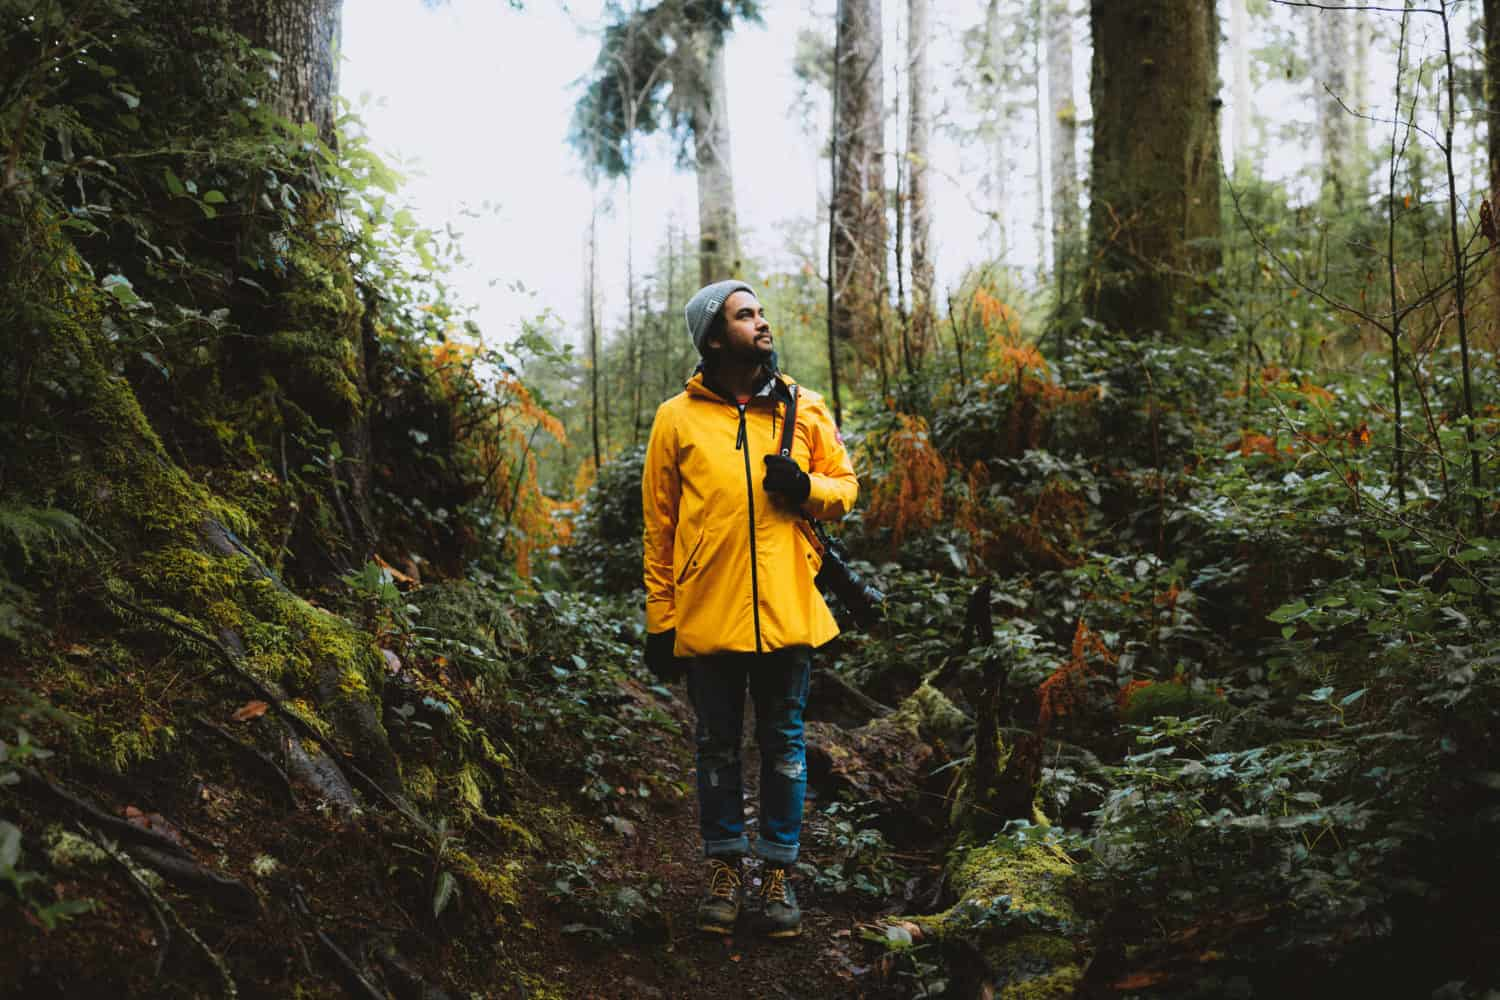 Berty wearing yellow jacket hiking in the PNW